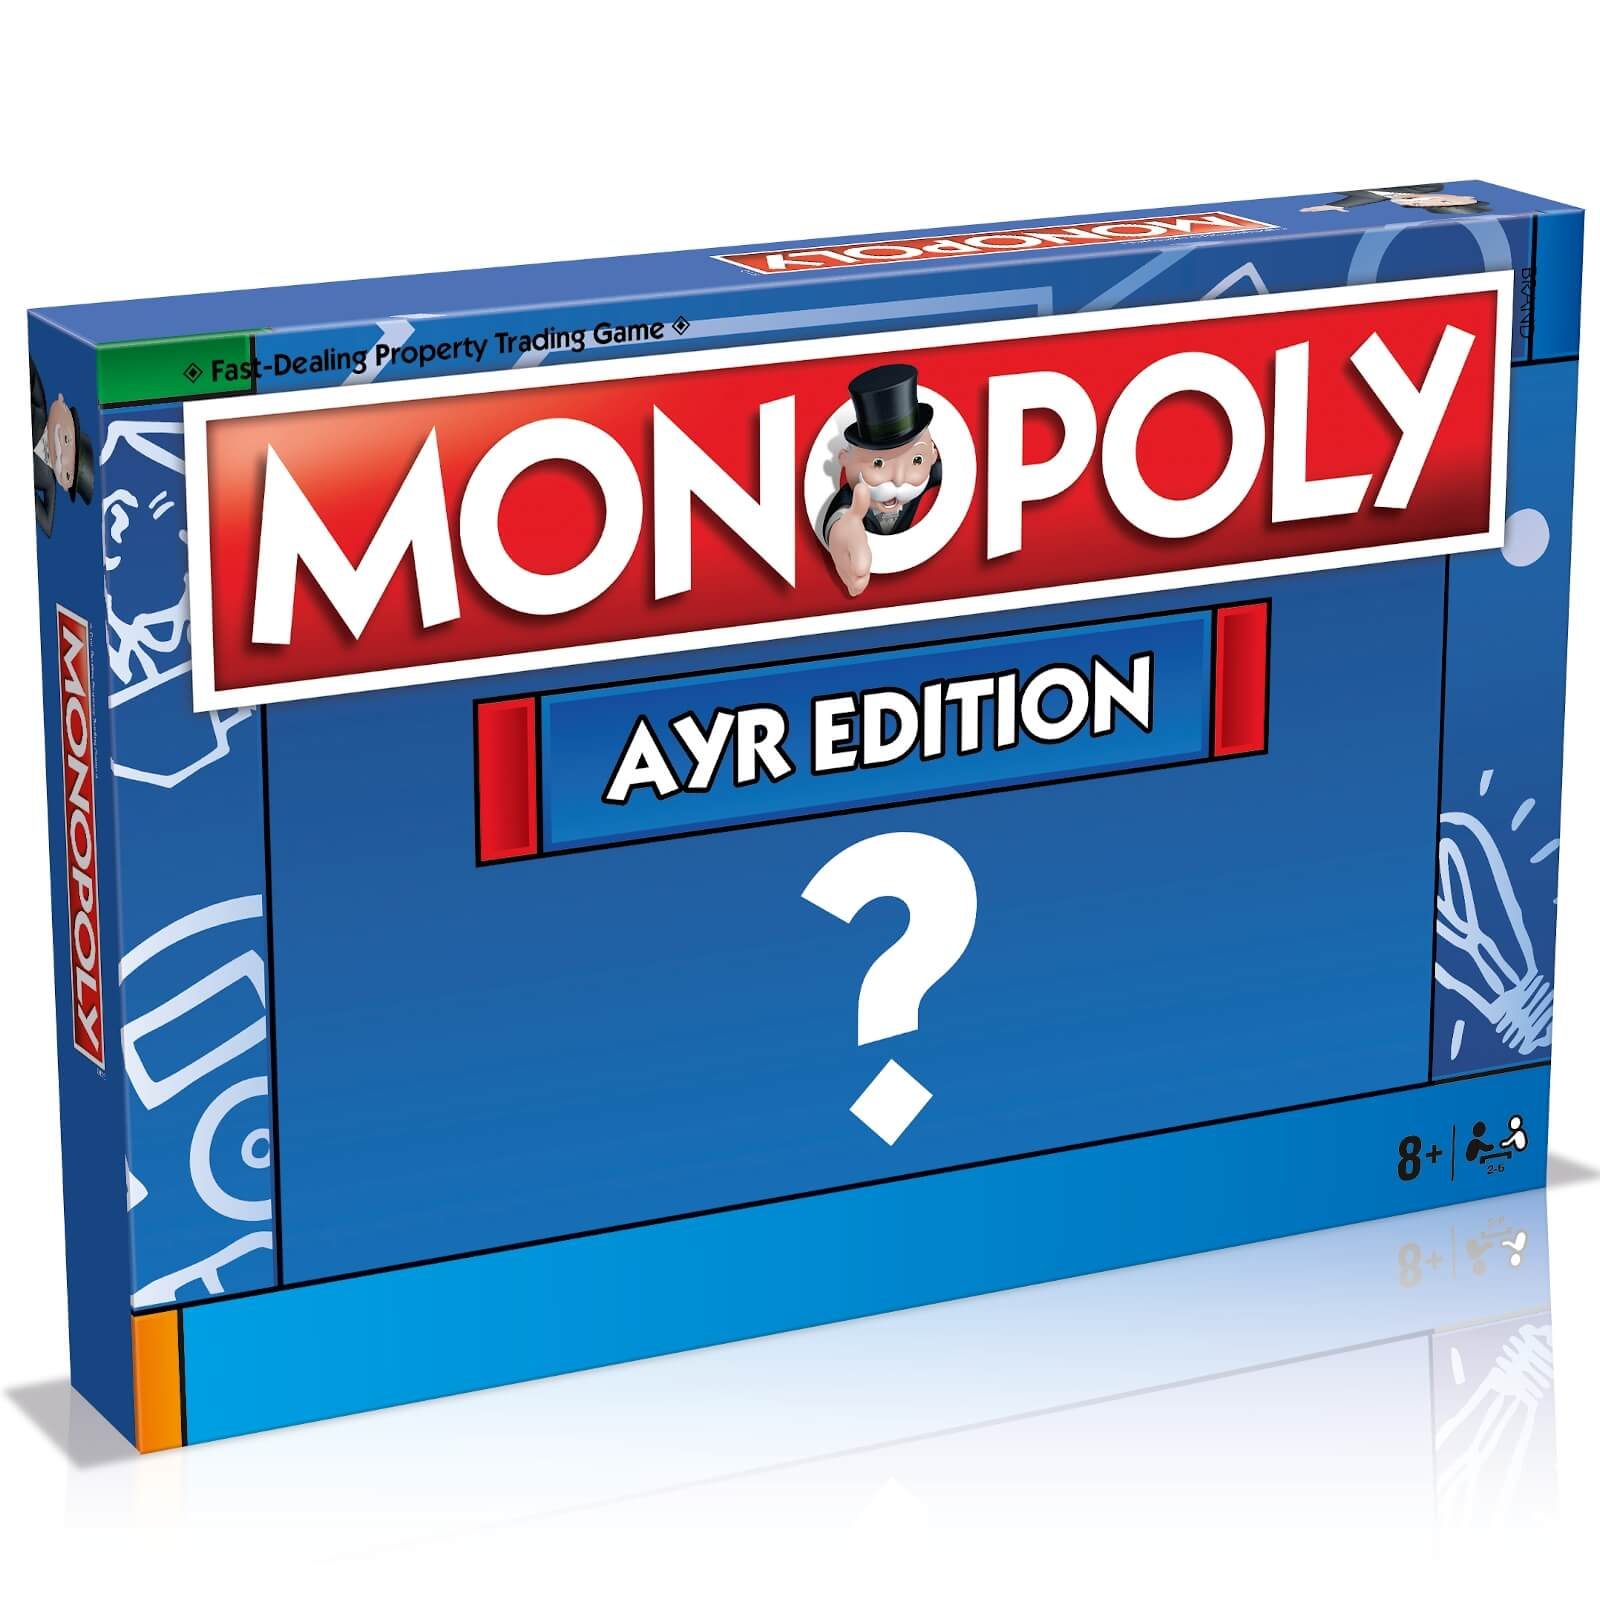 Image of Monopoly Board Game - Ayr Edition